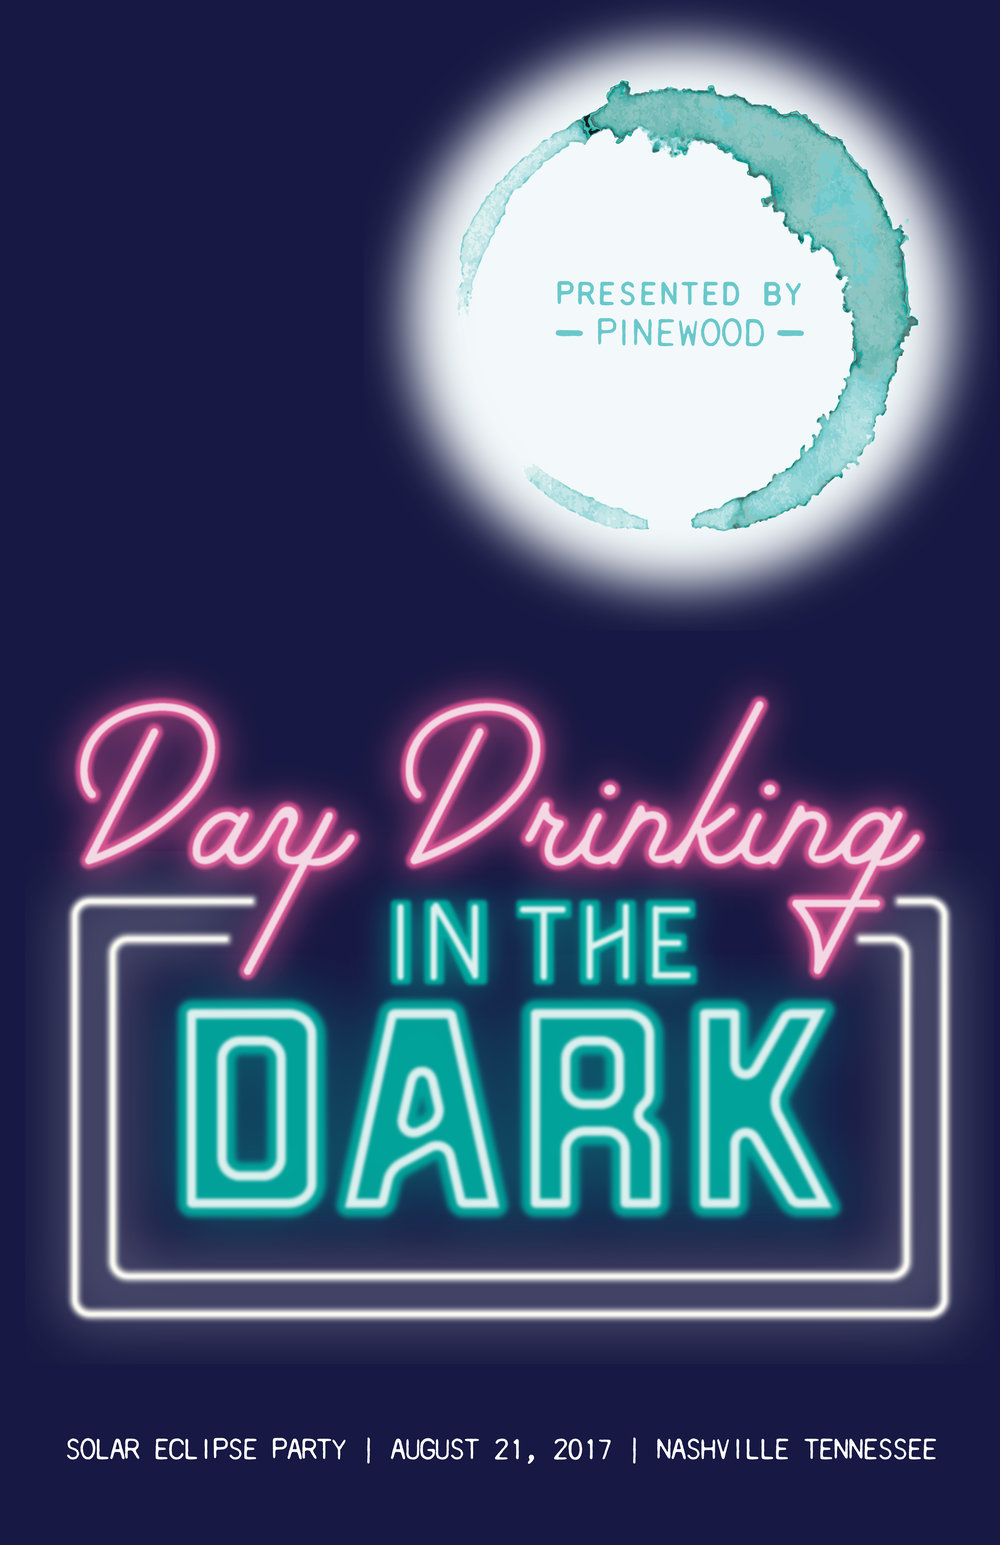 Eclipse_DayDrinkInDark_pinewood-01.jpg